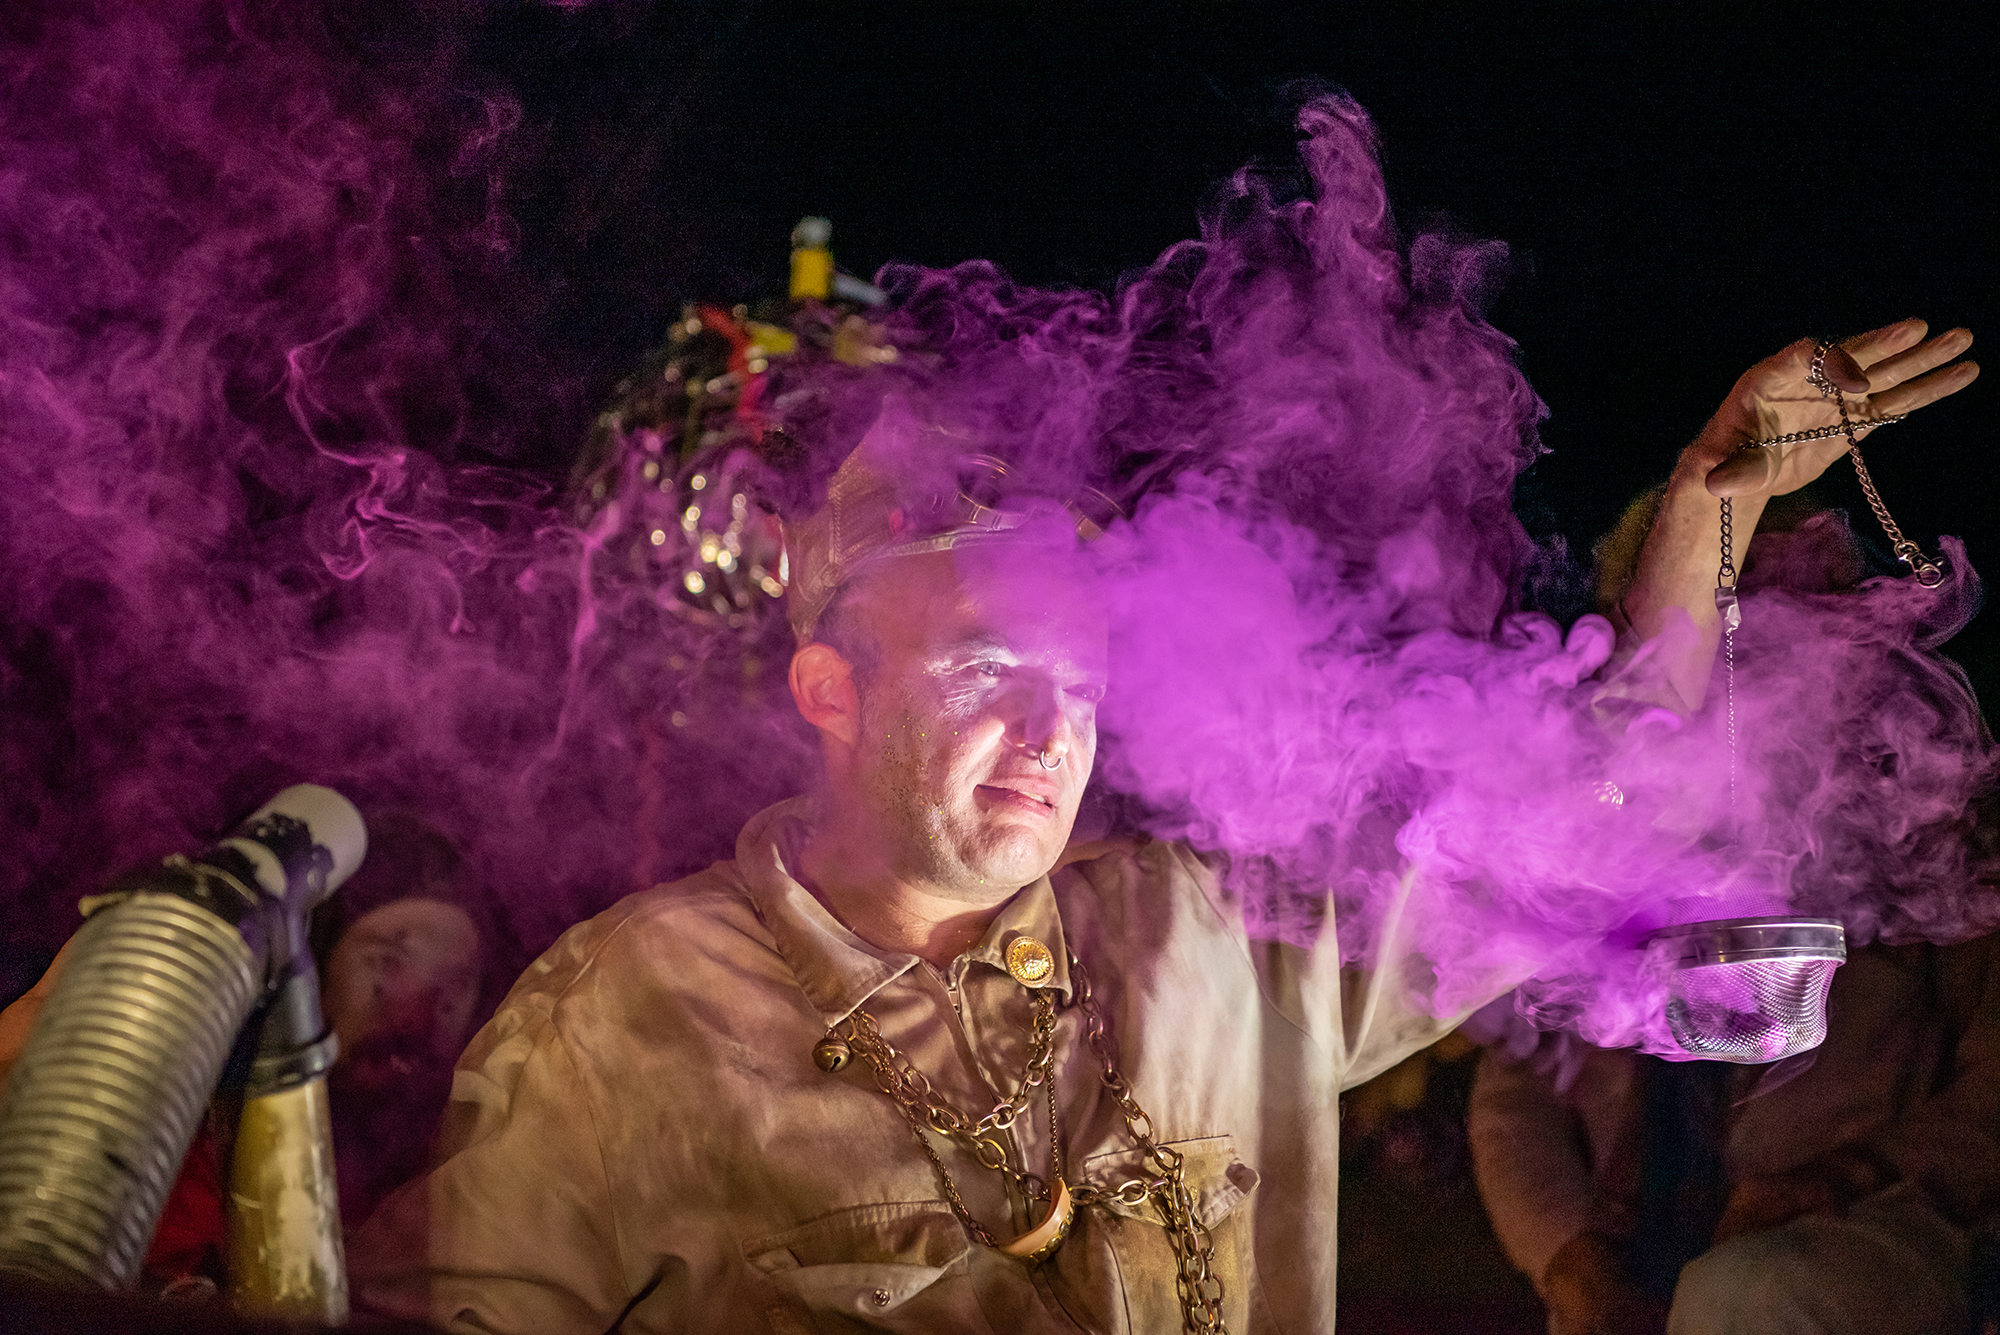 Arik Shraga Photographs a man shrouded in a mysterious purple smoke during a performance by DAVAI Theater Group